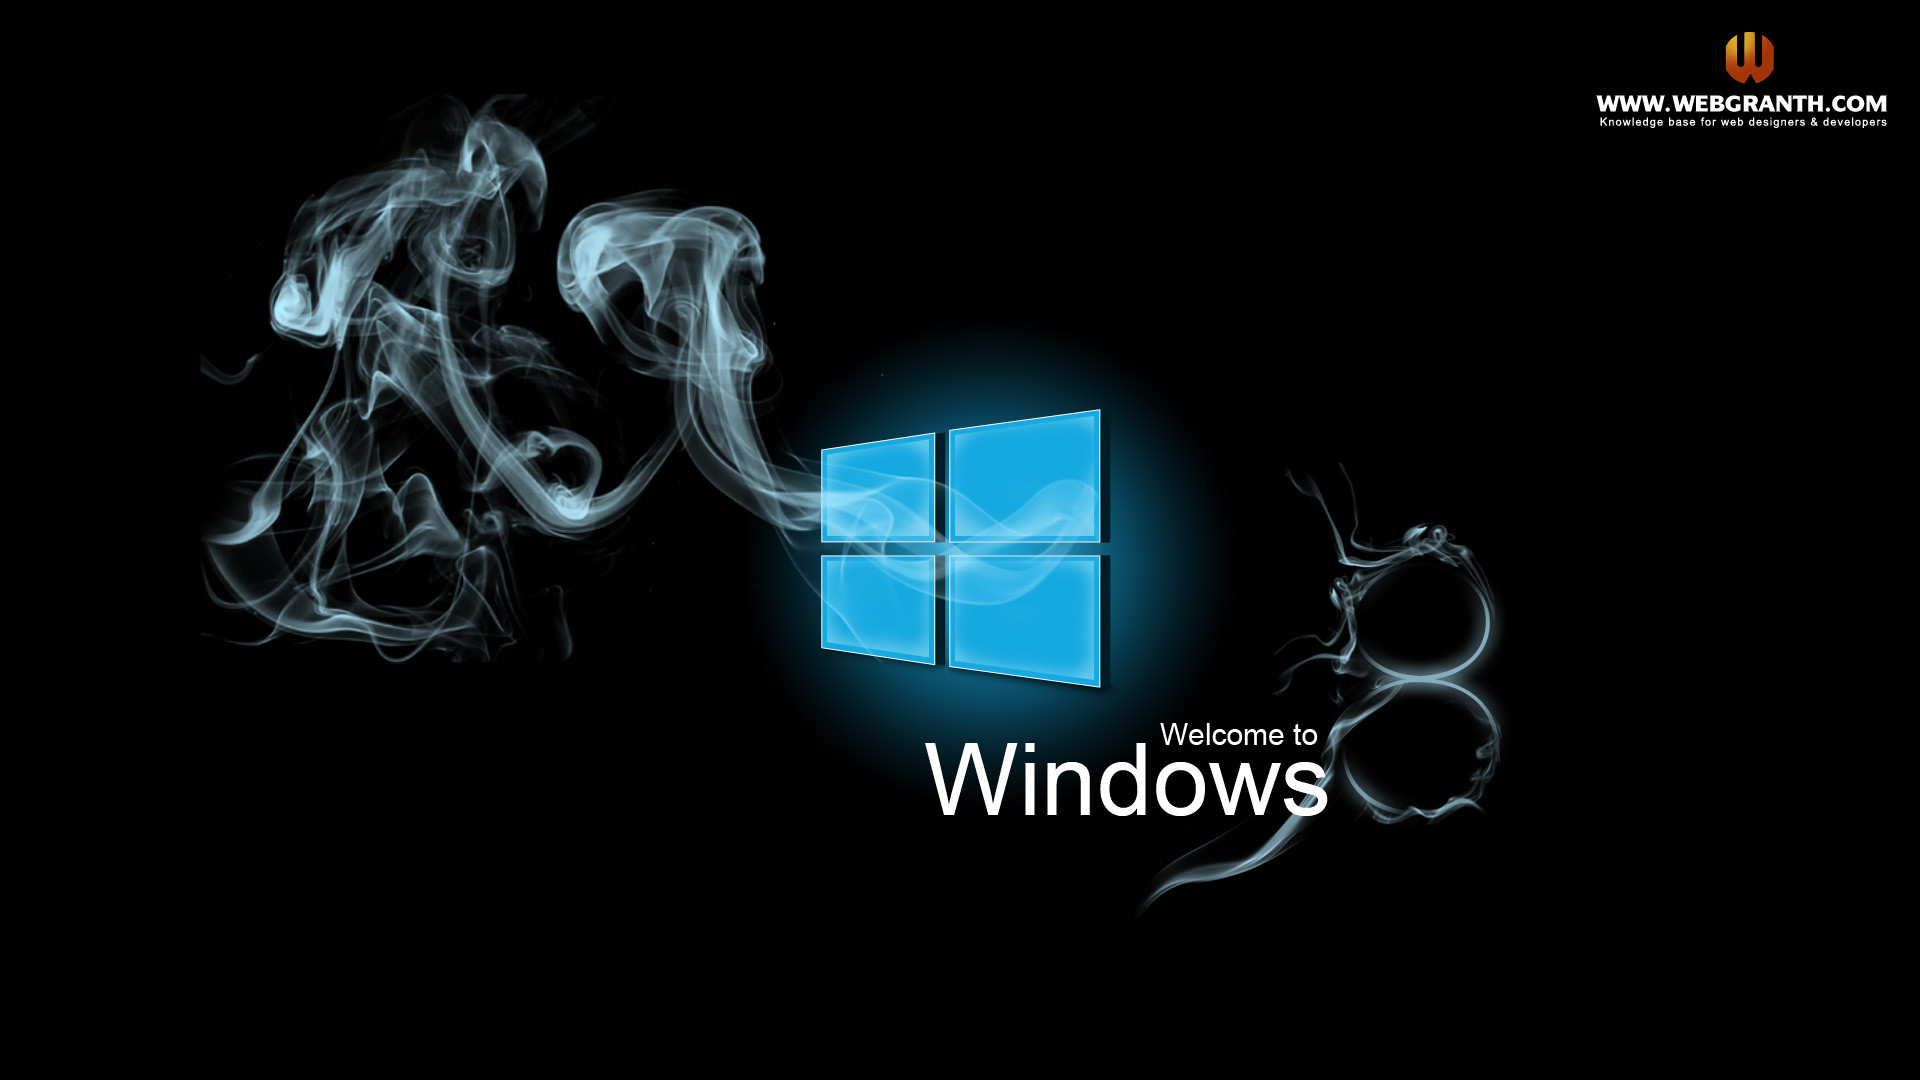 Free Windows 8 Wallpaper Backgrounds (2): View HD Image of Free .